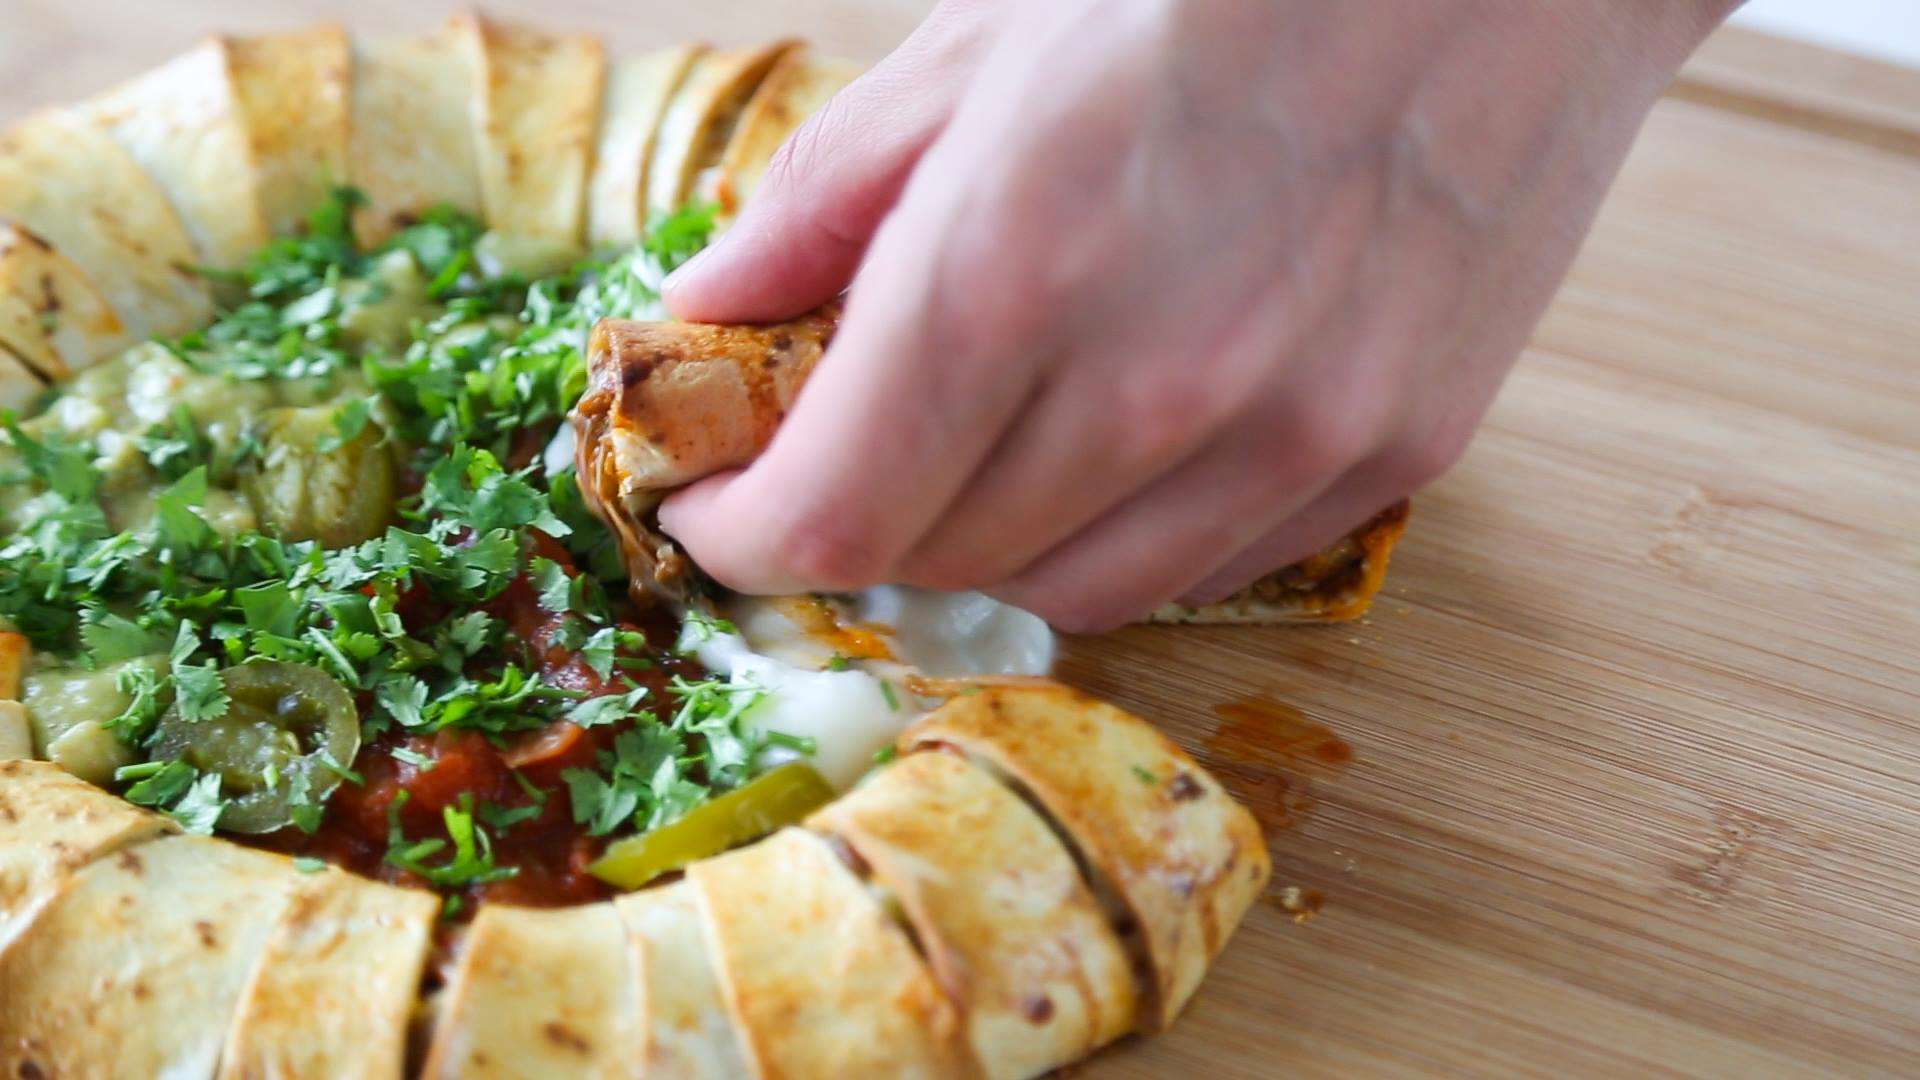 13446011 10154262058771323 965527314 o Heres How You Make A Chilli Tortilla Ring